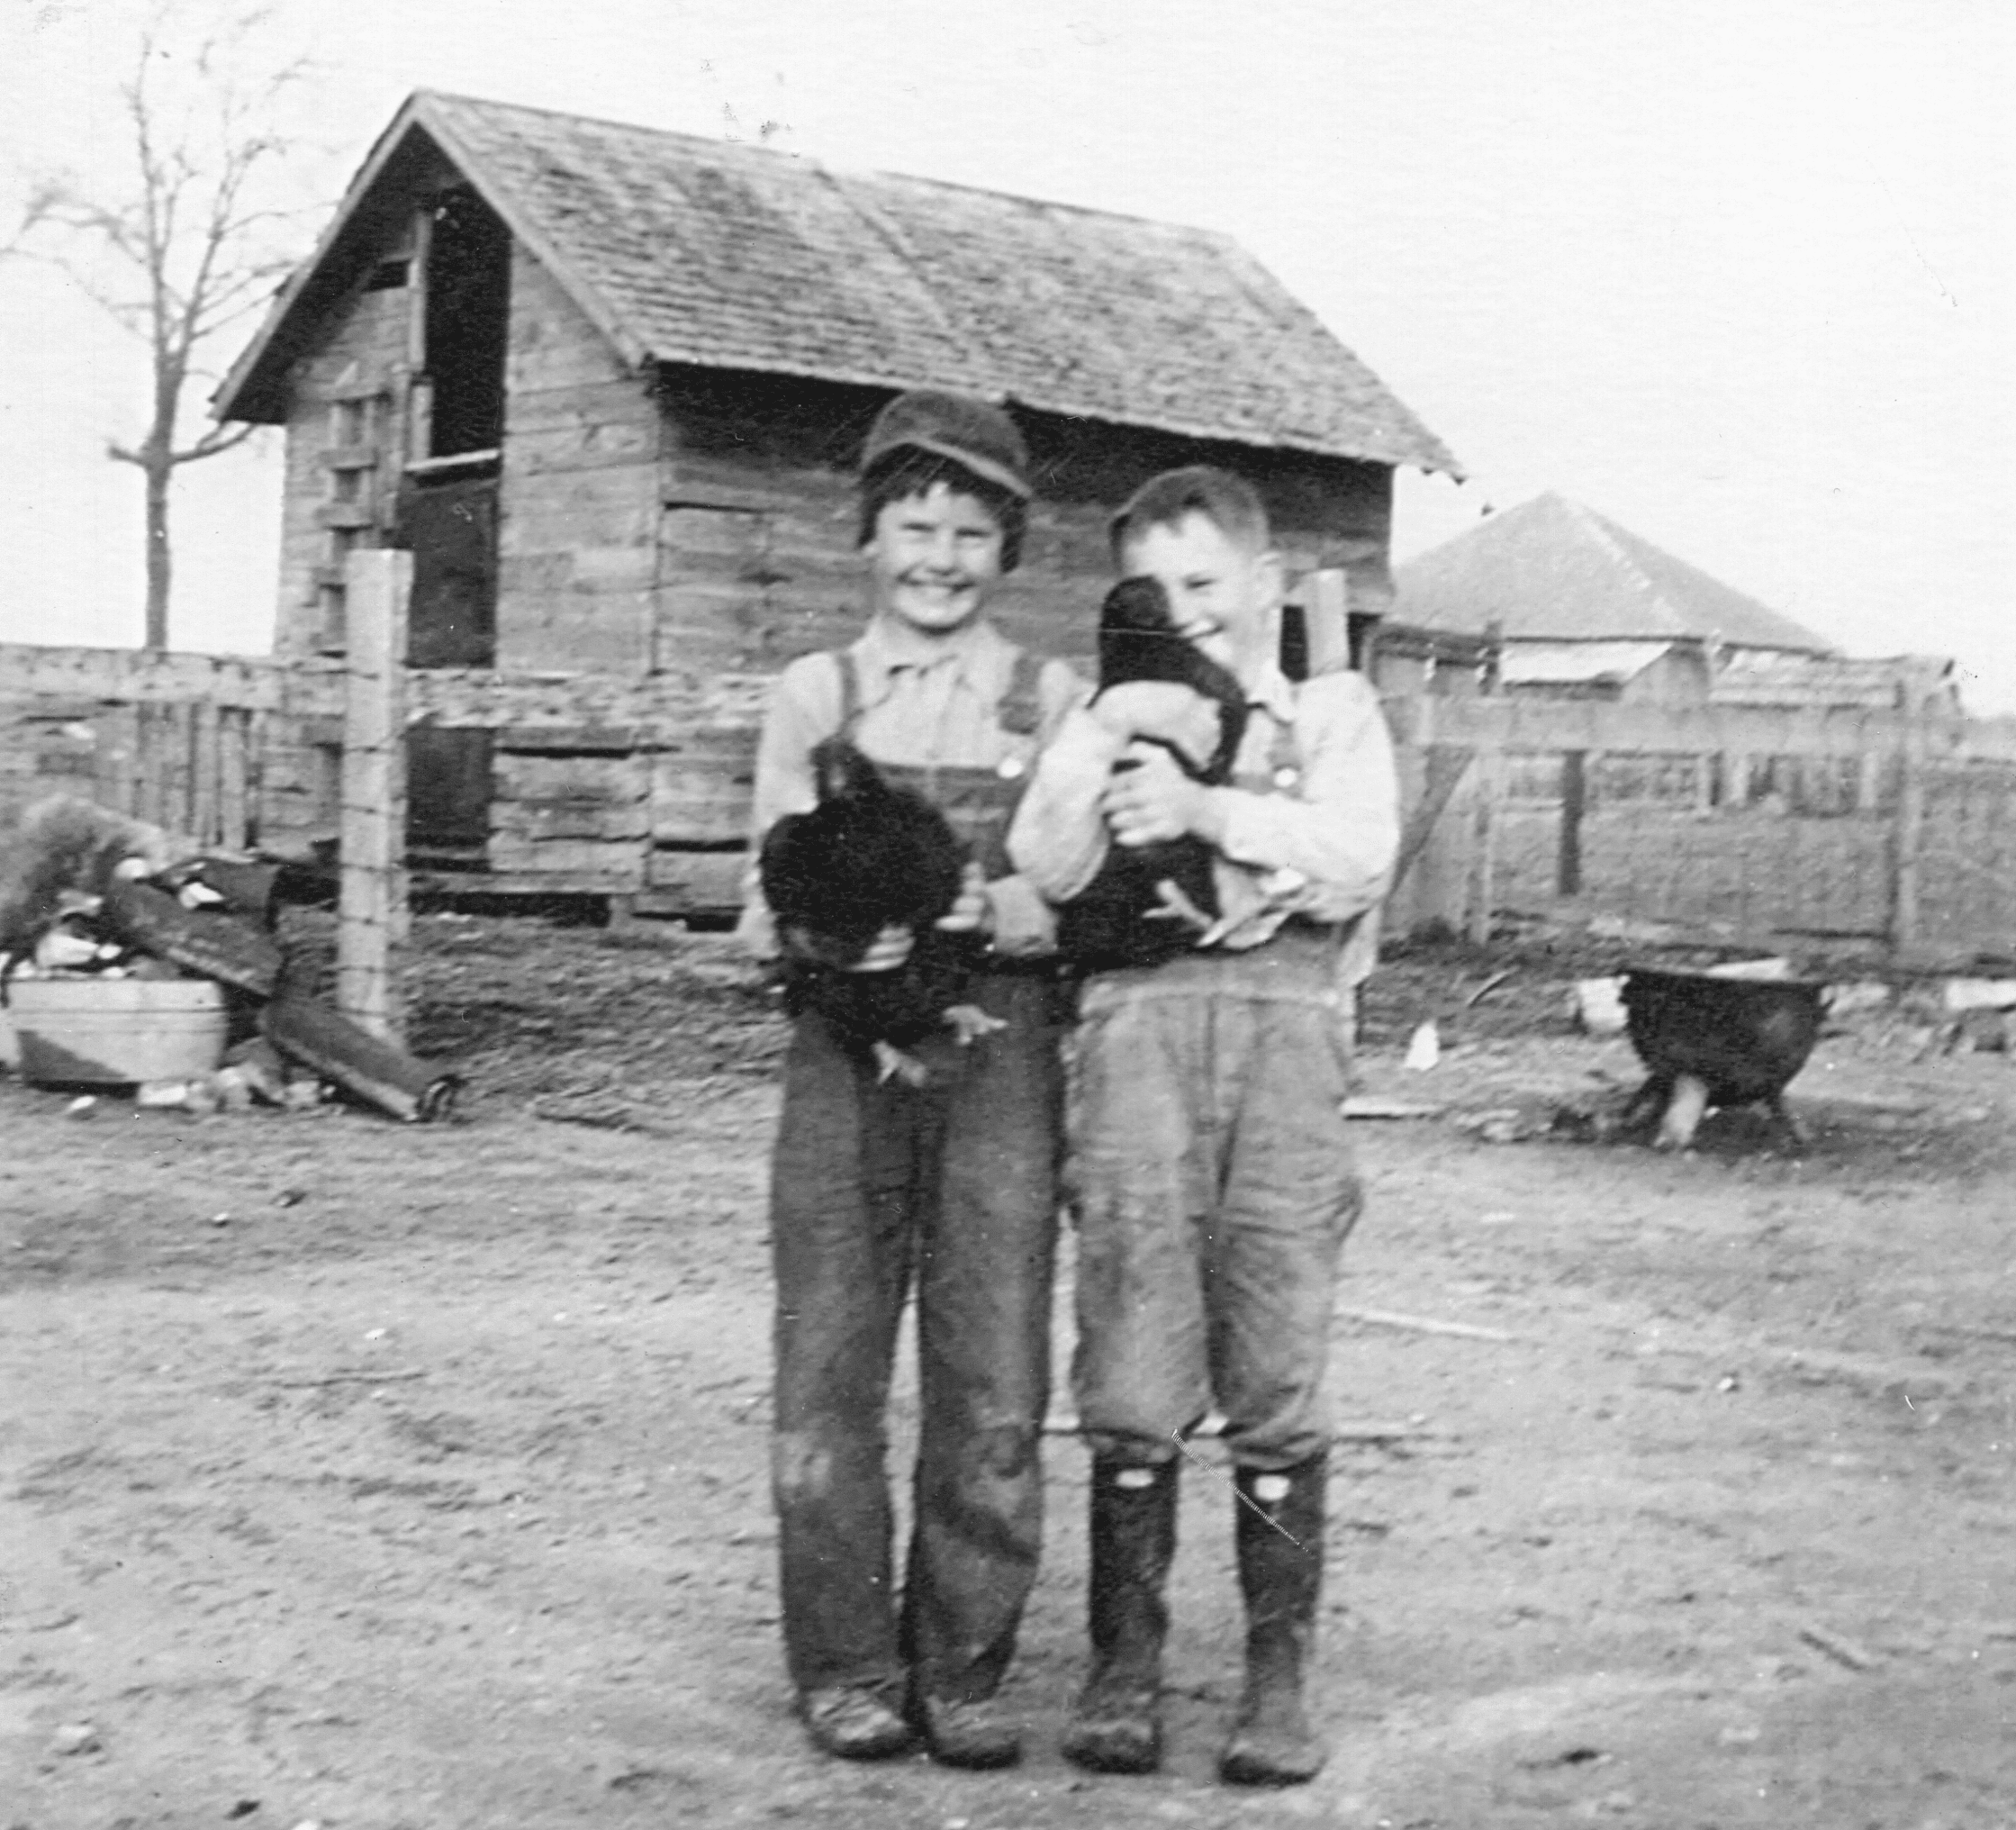 1940's – Tinsley and Hulen Boys